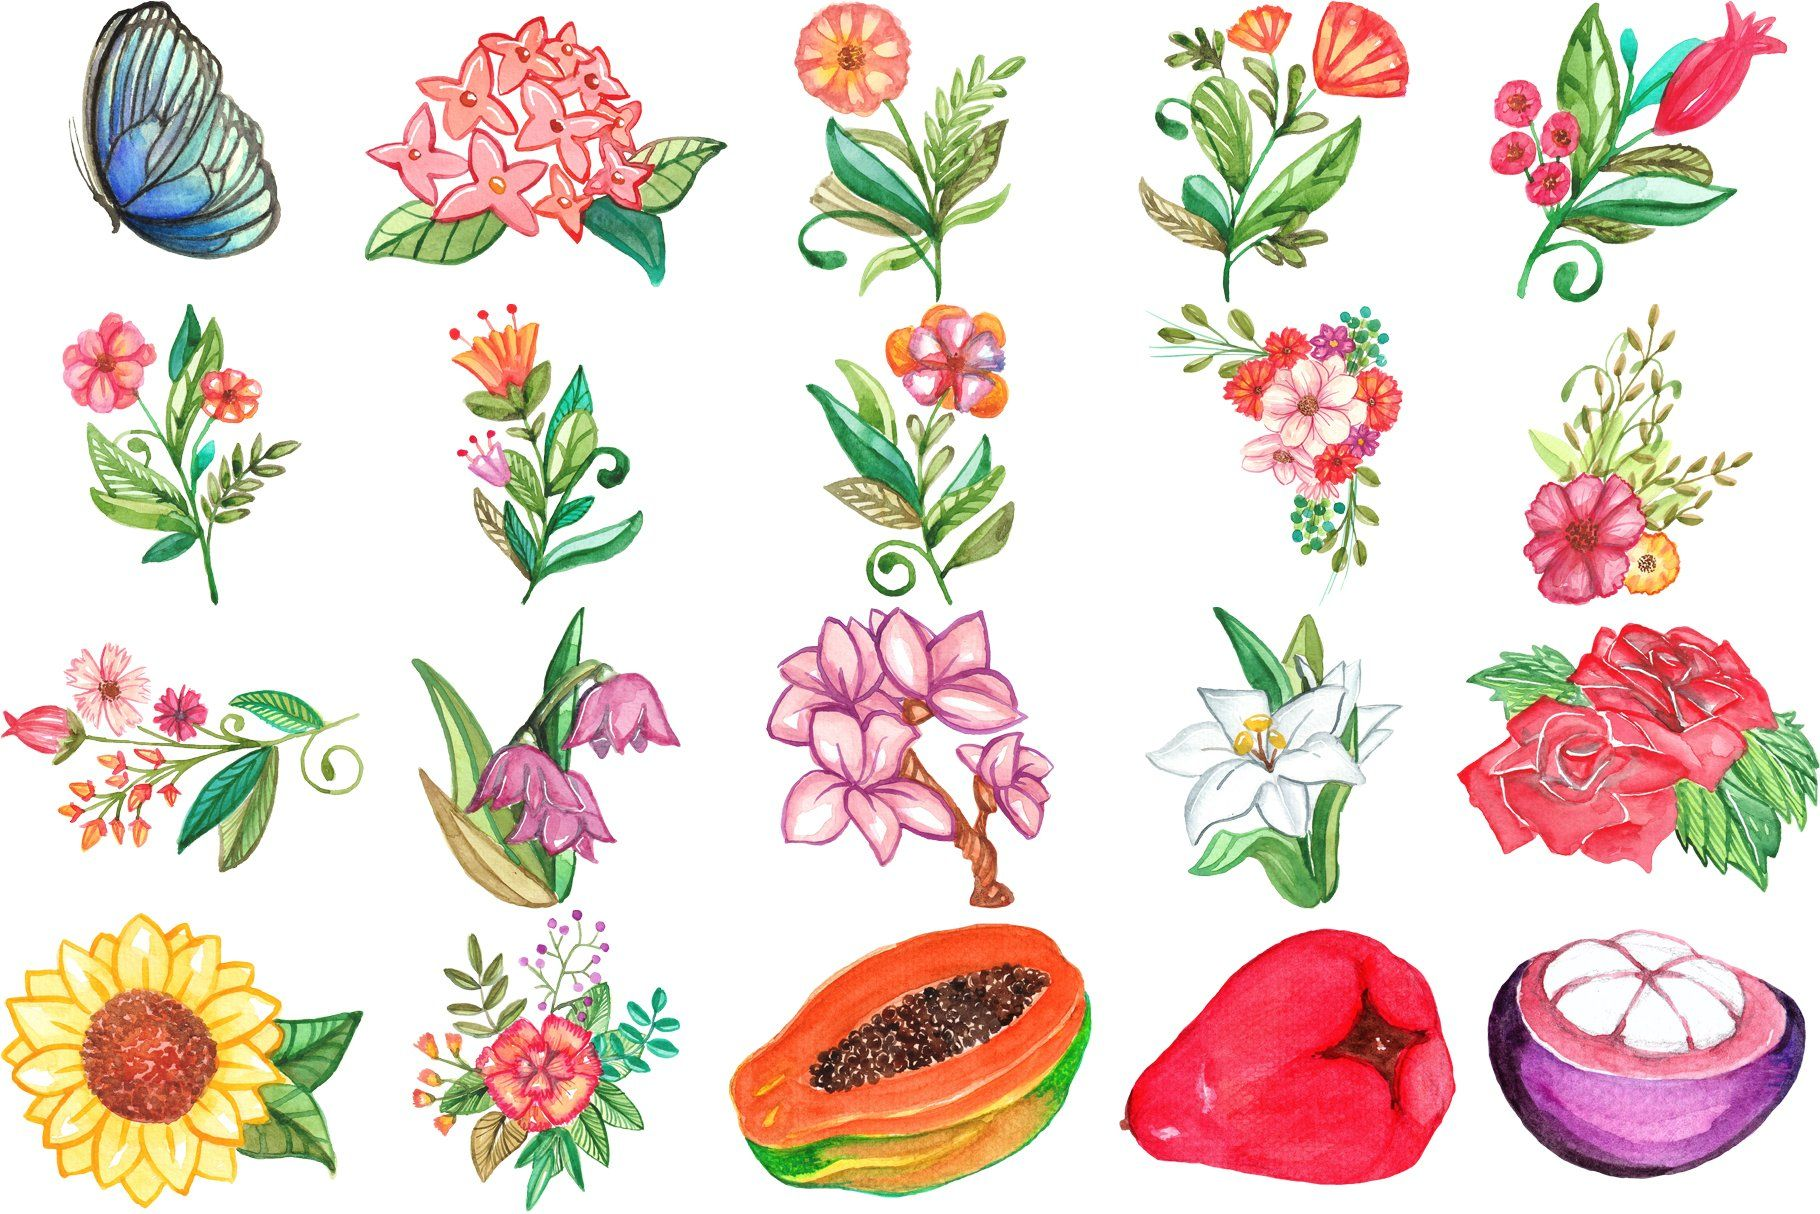 99 Philippine Icons Watercolor Png Tropical Illustration Leaf Images Flag Art